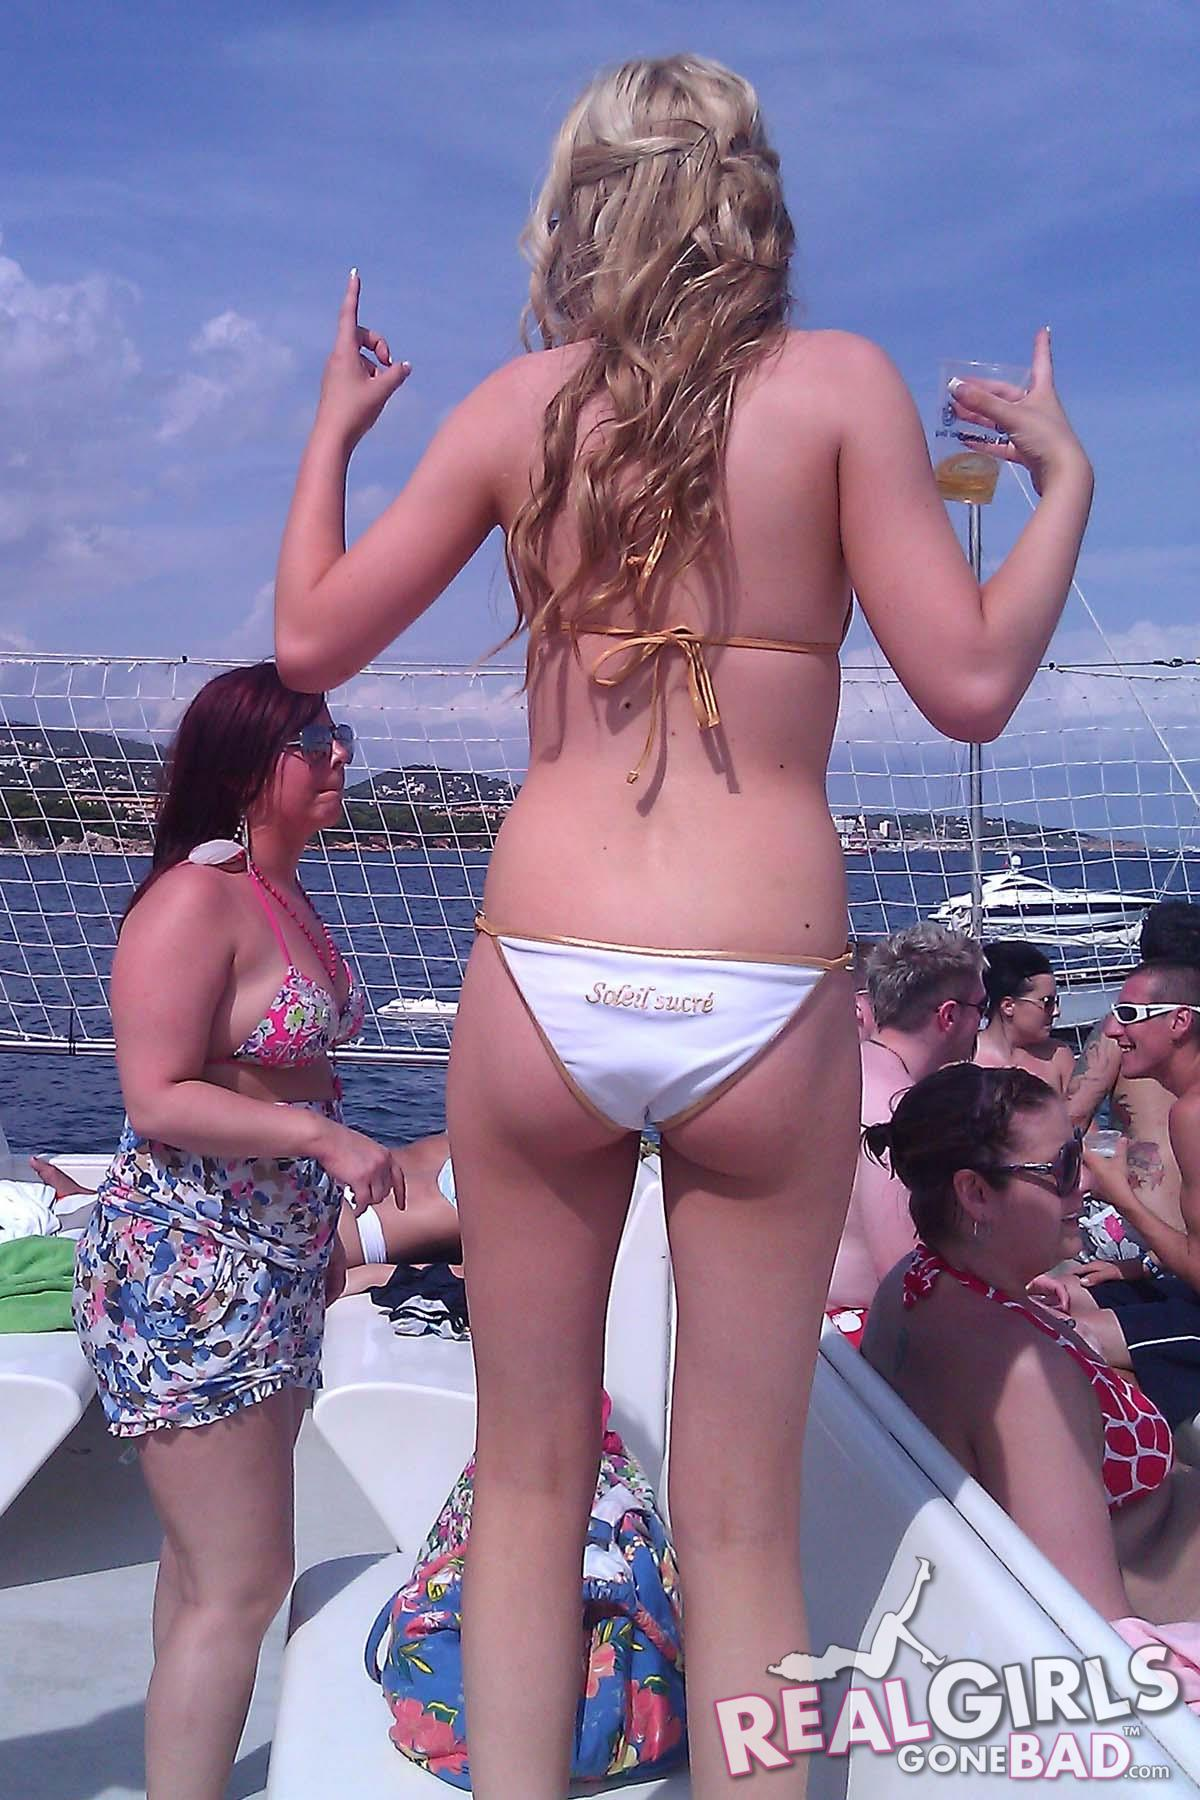 Real Girls Gone Bad – Boat Party